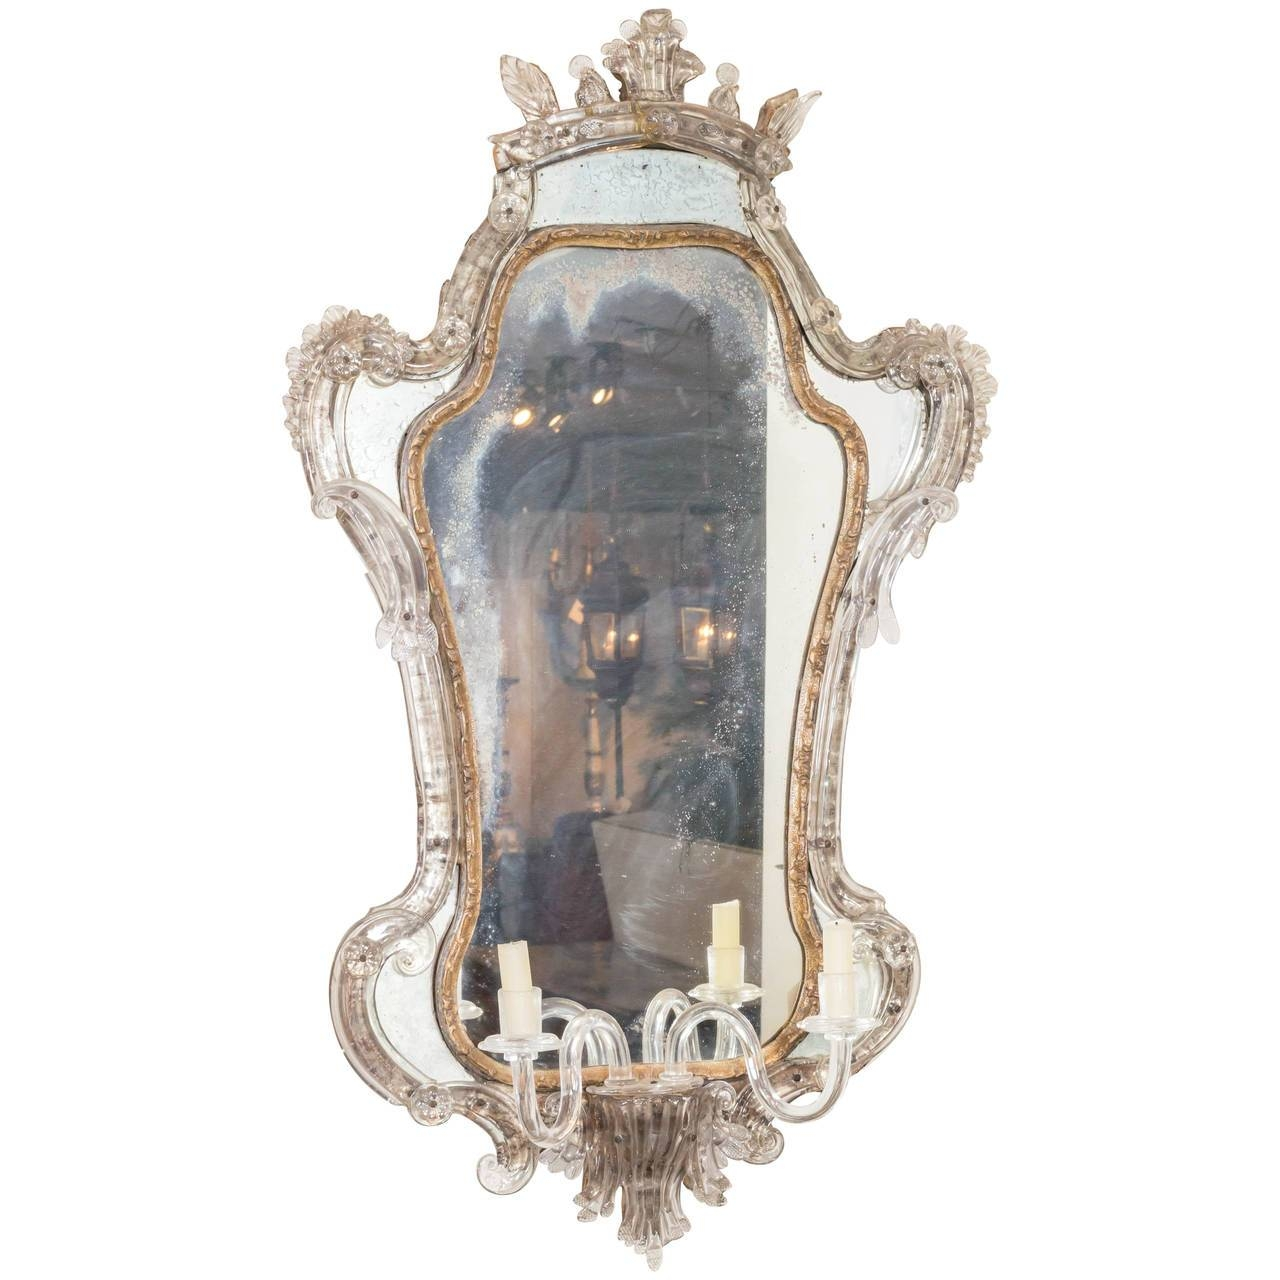 Antique Venetian Glass Mirror With Blown Glass Sconce, Italy Circa with regard to Venetian Antique Mirrors (Image 6 of 25)